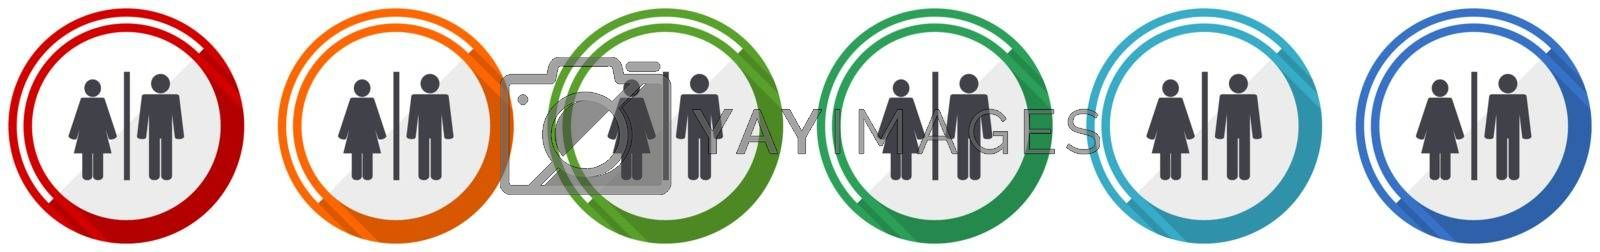 Man and Woman icon set, flat design vector illustration in 6 colors options for webdesign and mobile applications